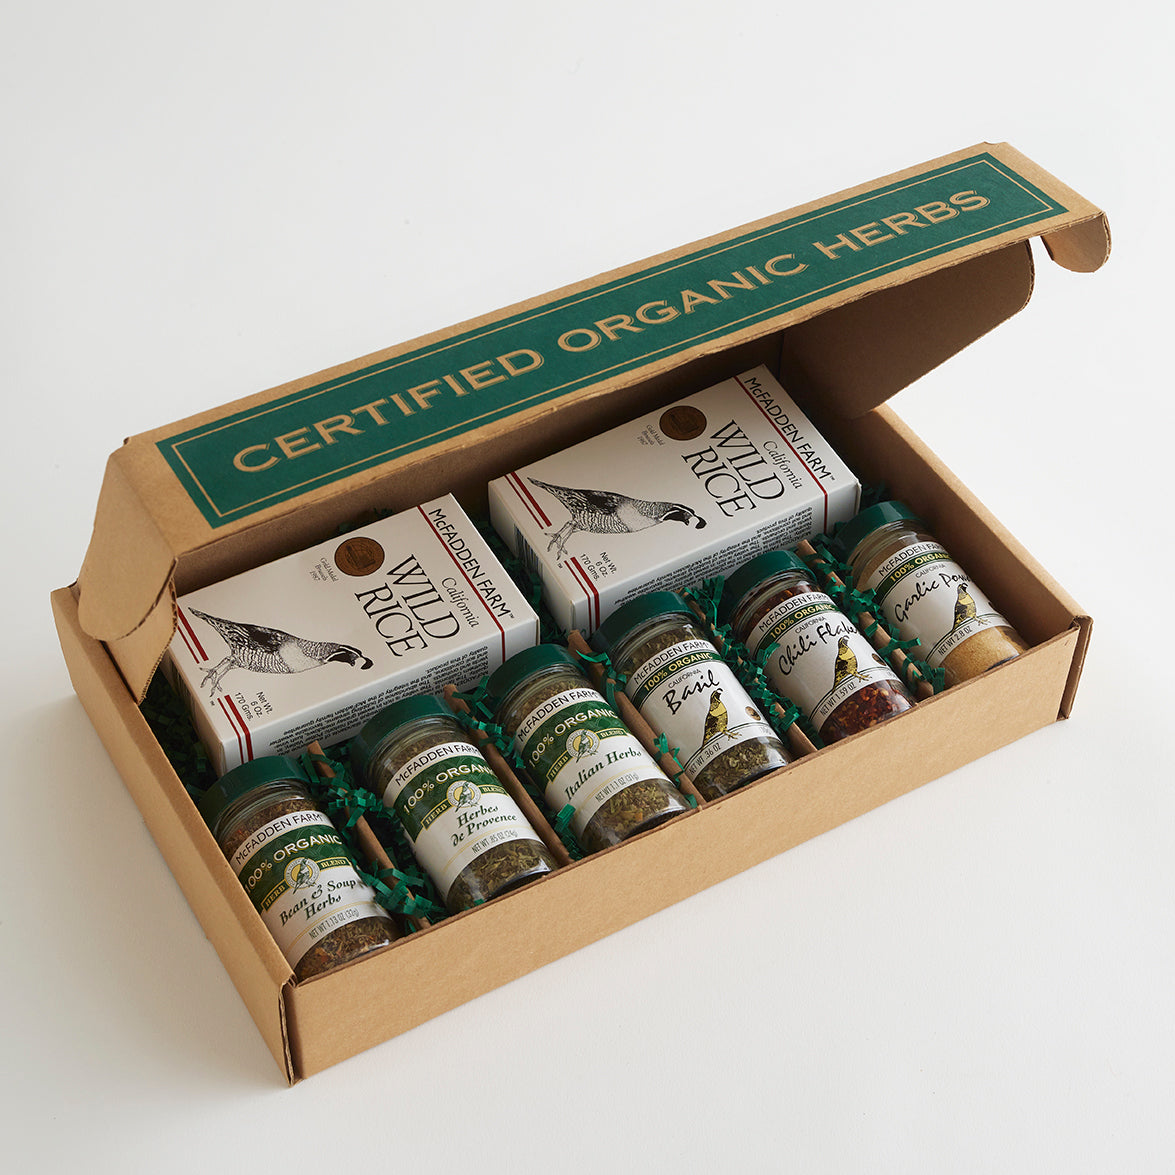 Wild Rice & Herbs Gift Box - Large